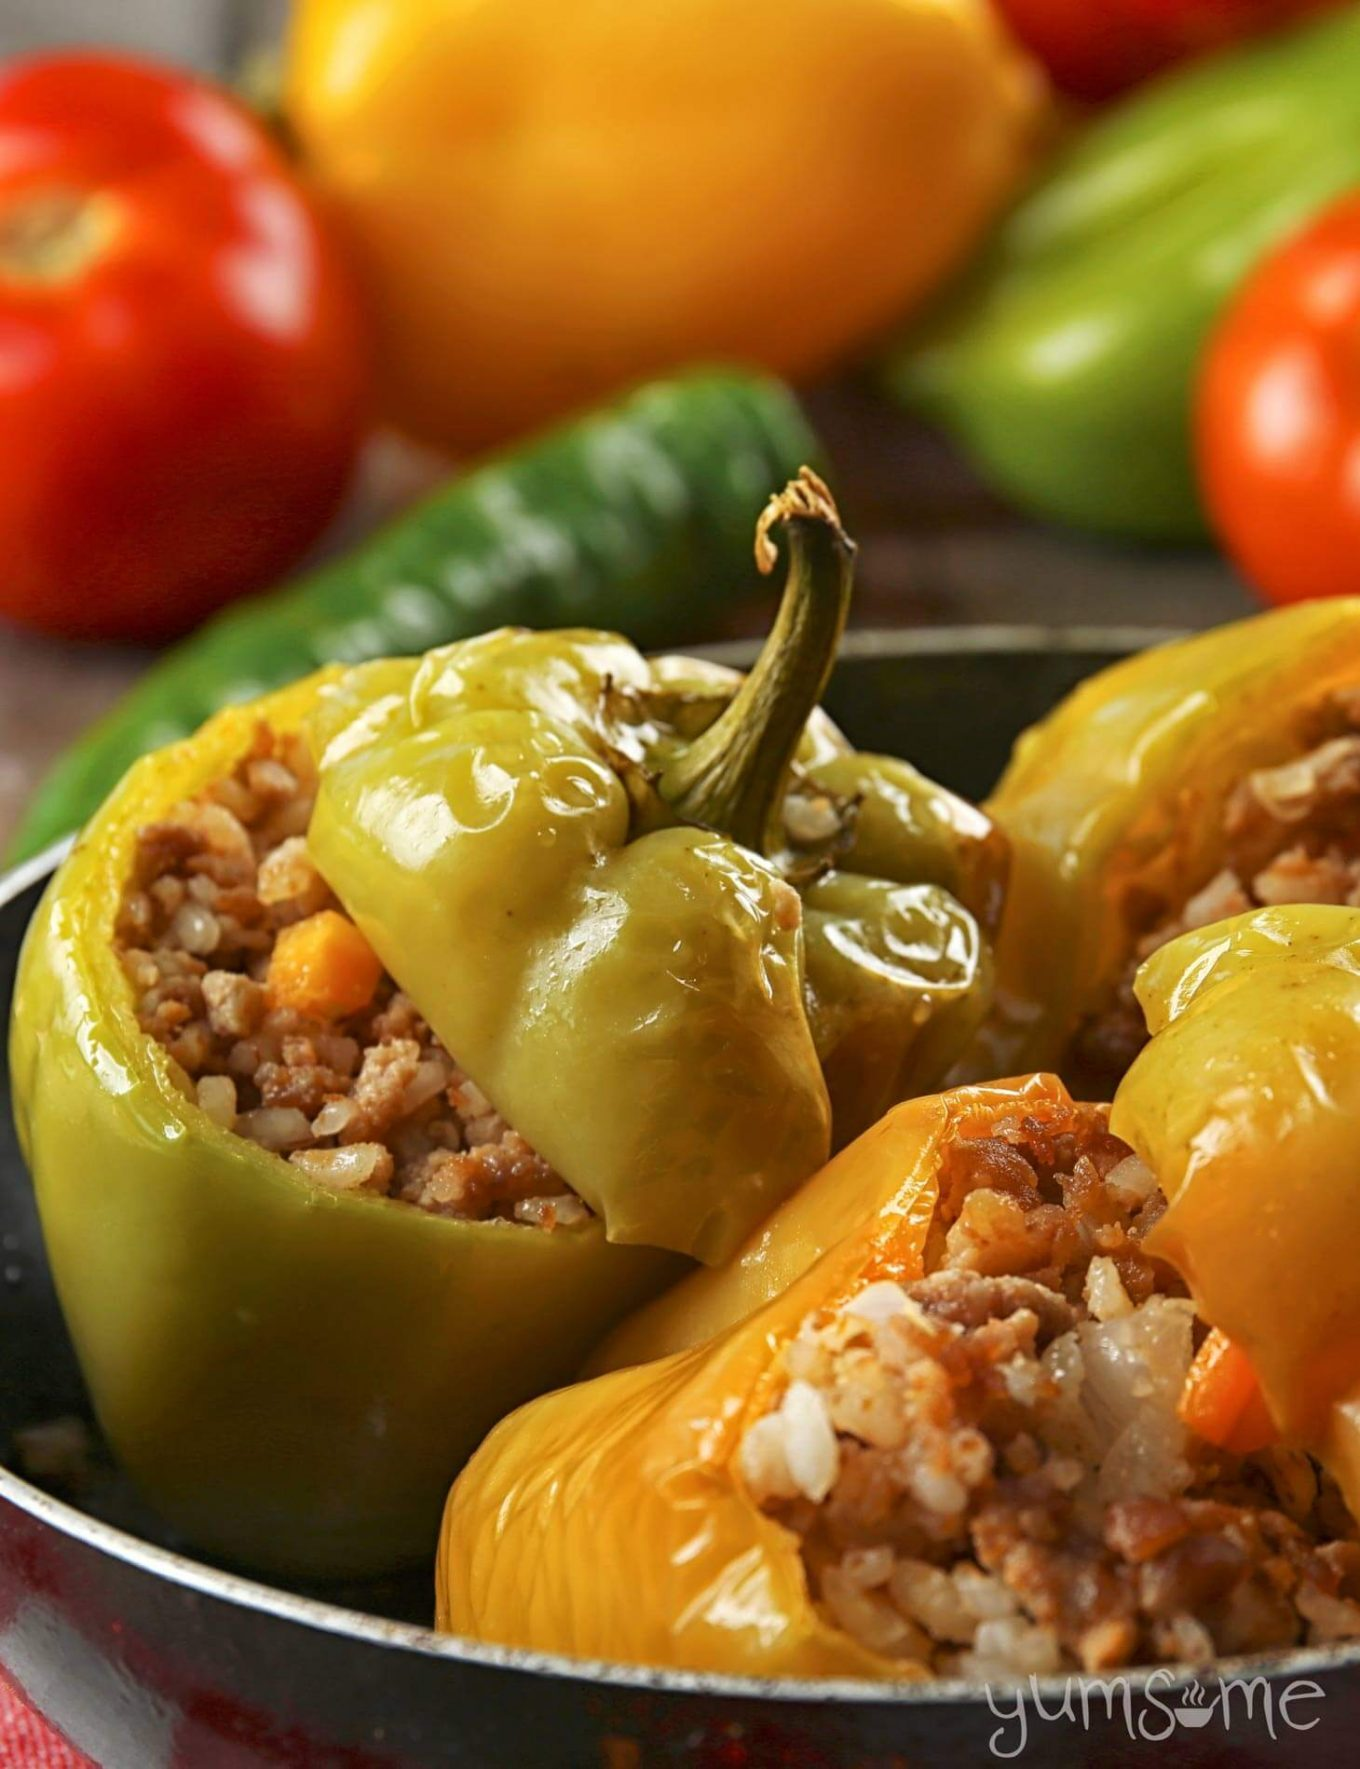 Croatian Stuffed Peppers… Veganised!